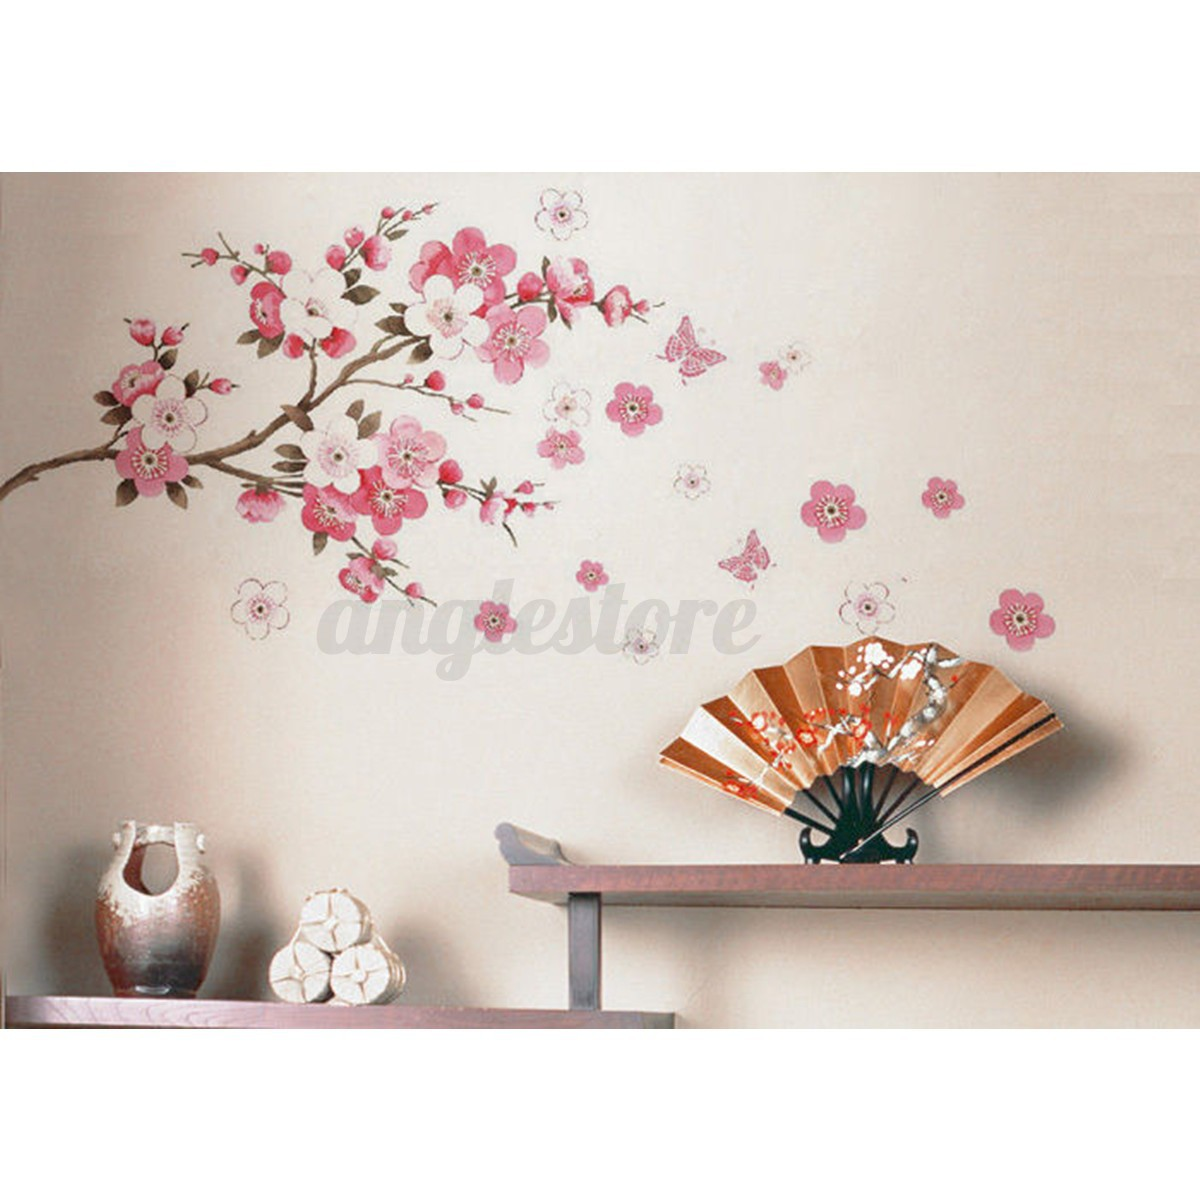 Large Sakura Flower Removable Wall Sticker Paper Mural Art Decal - Wall decals in pakistanblack flowers removable wall stickers wall decals mural home art